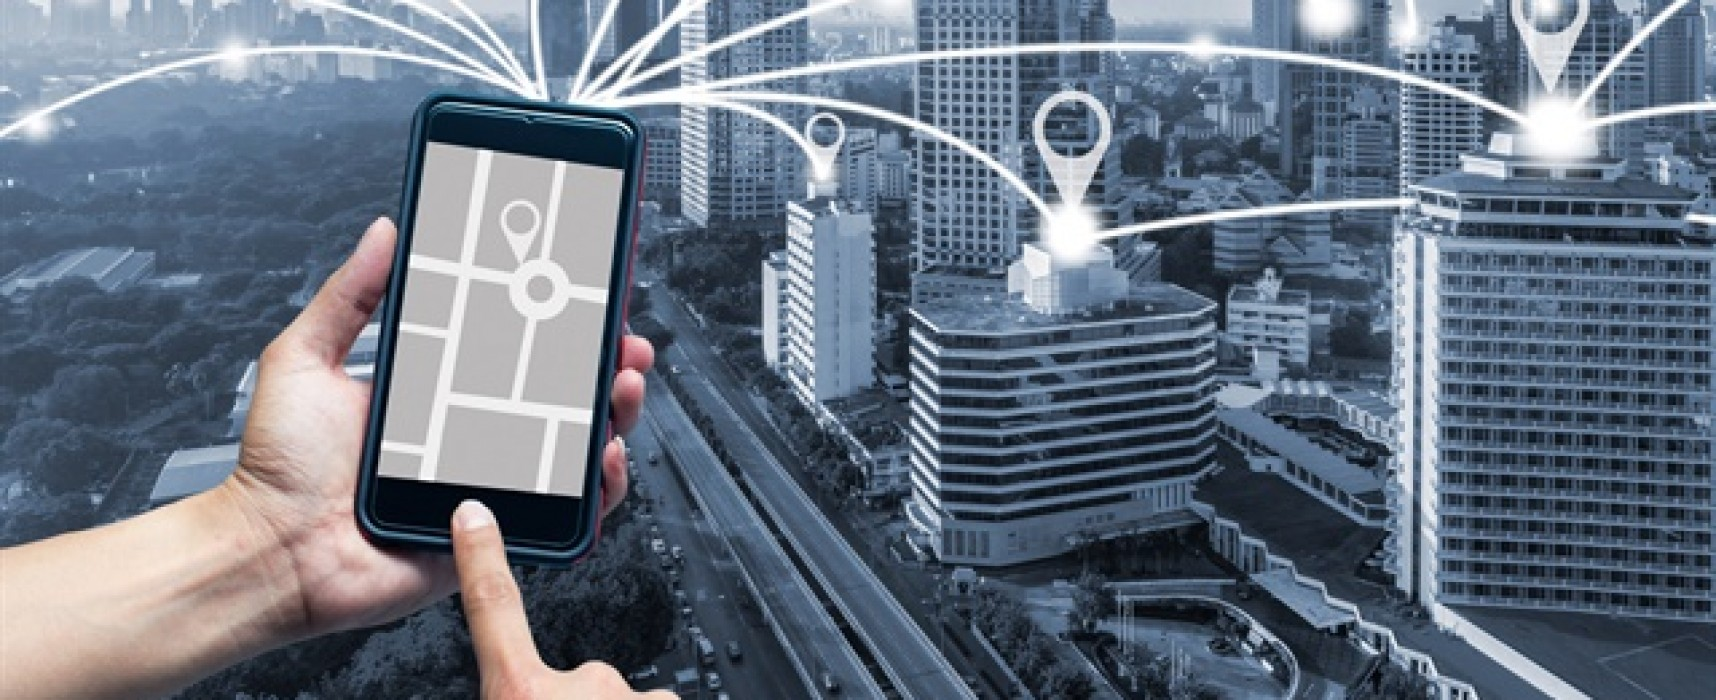 Affordable GPS Technology Has Made It Easy and Efficient to Track a Vehicle